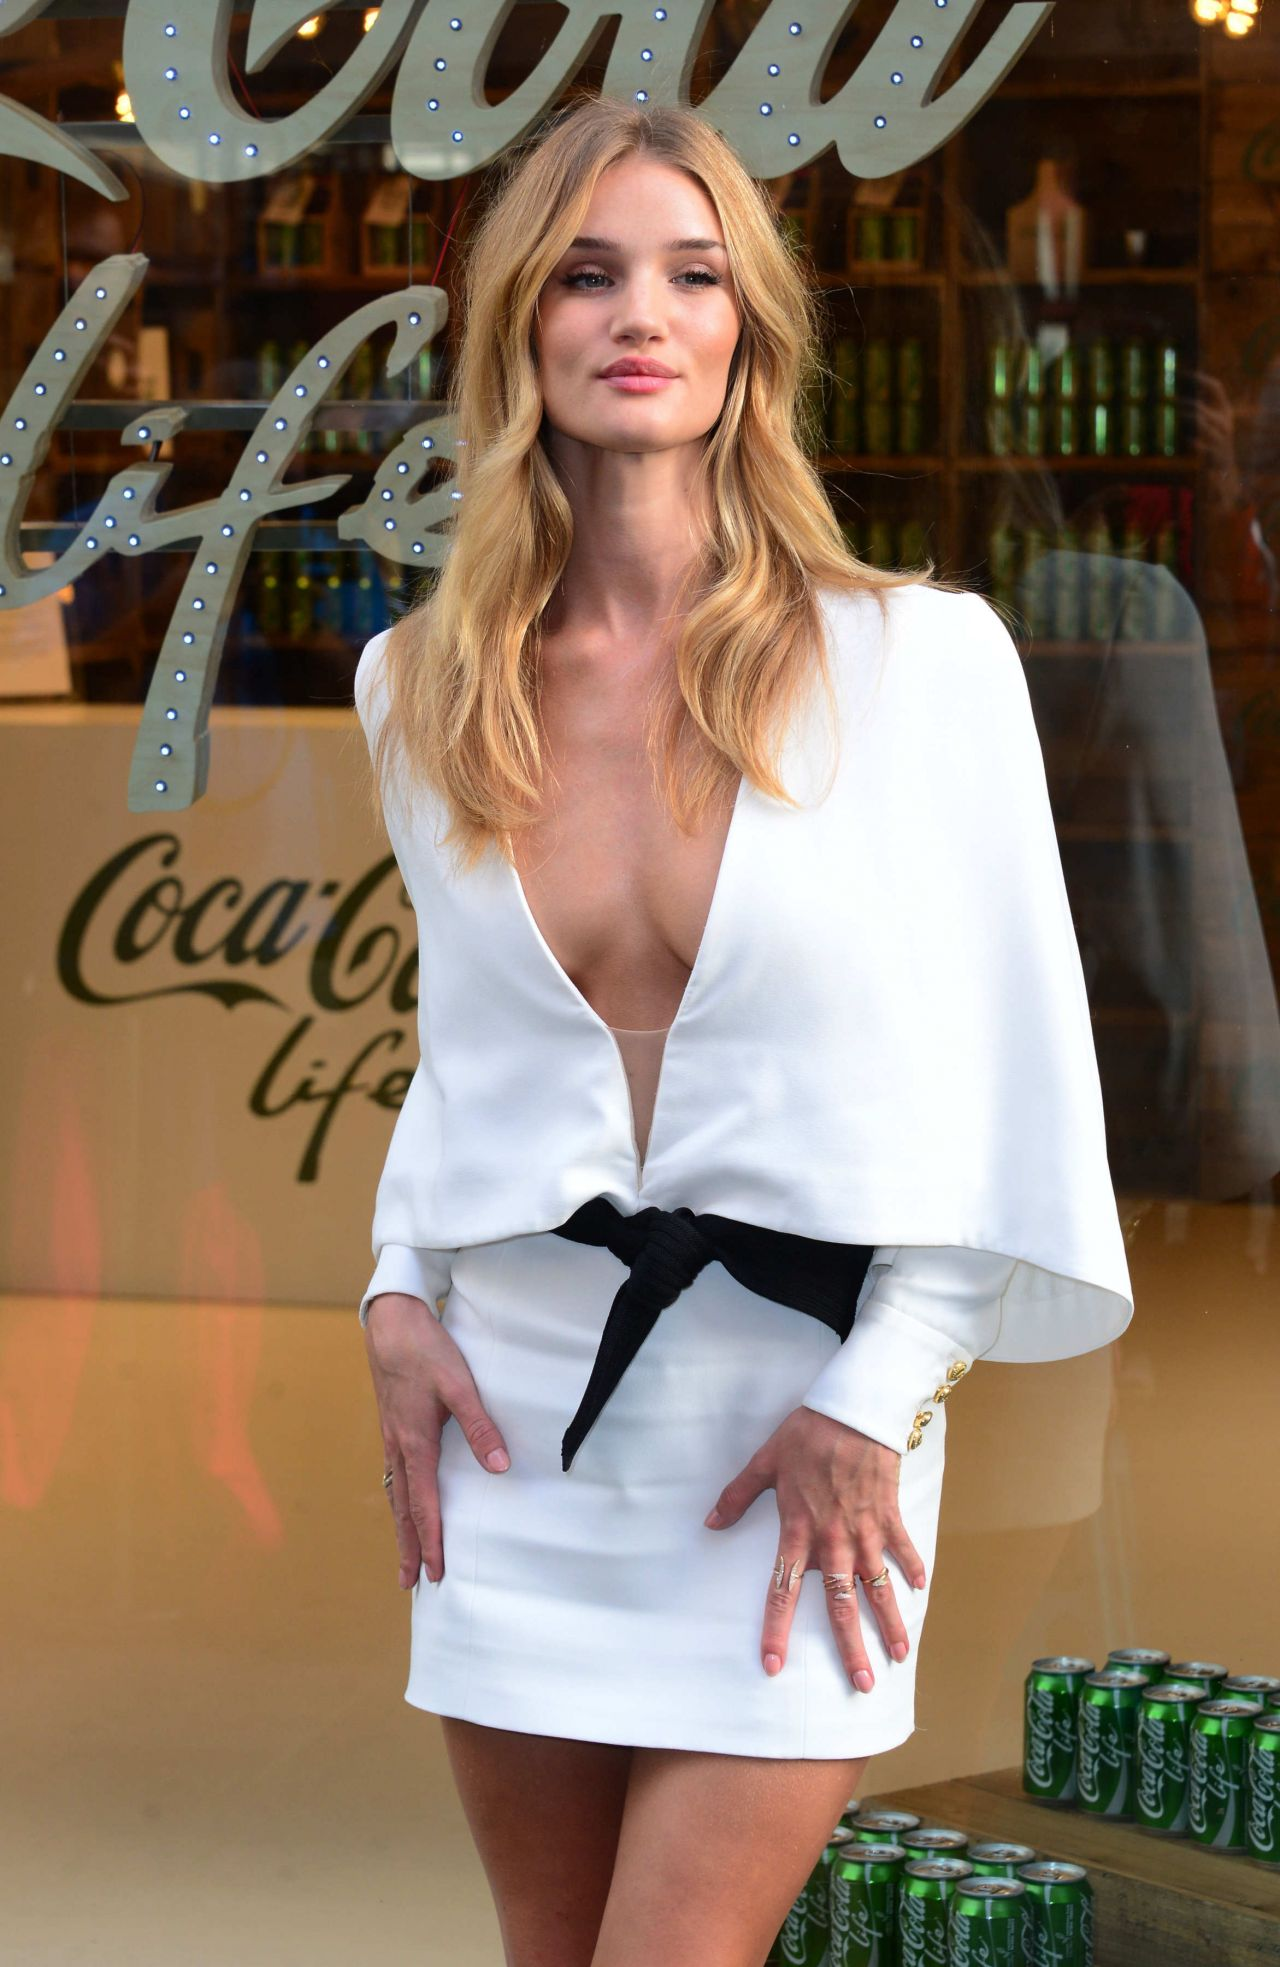 Rosie Huntington-Whiteley in a White Dress - Launches Coca-Cola Life in London - September 2014